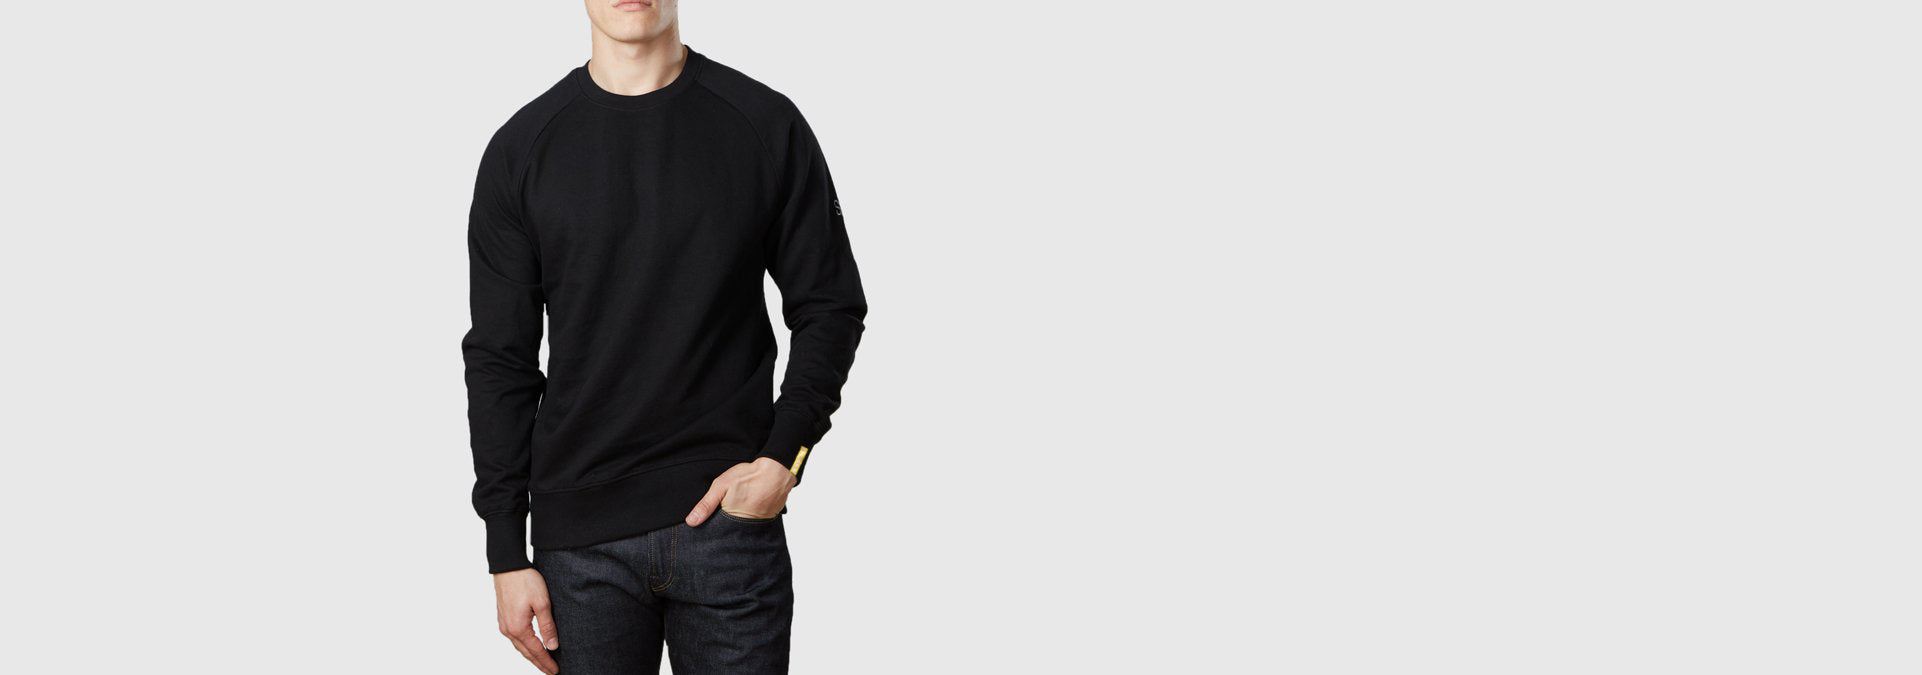 Core Organic Cotton Sweatshirt Black